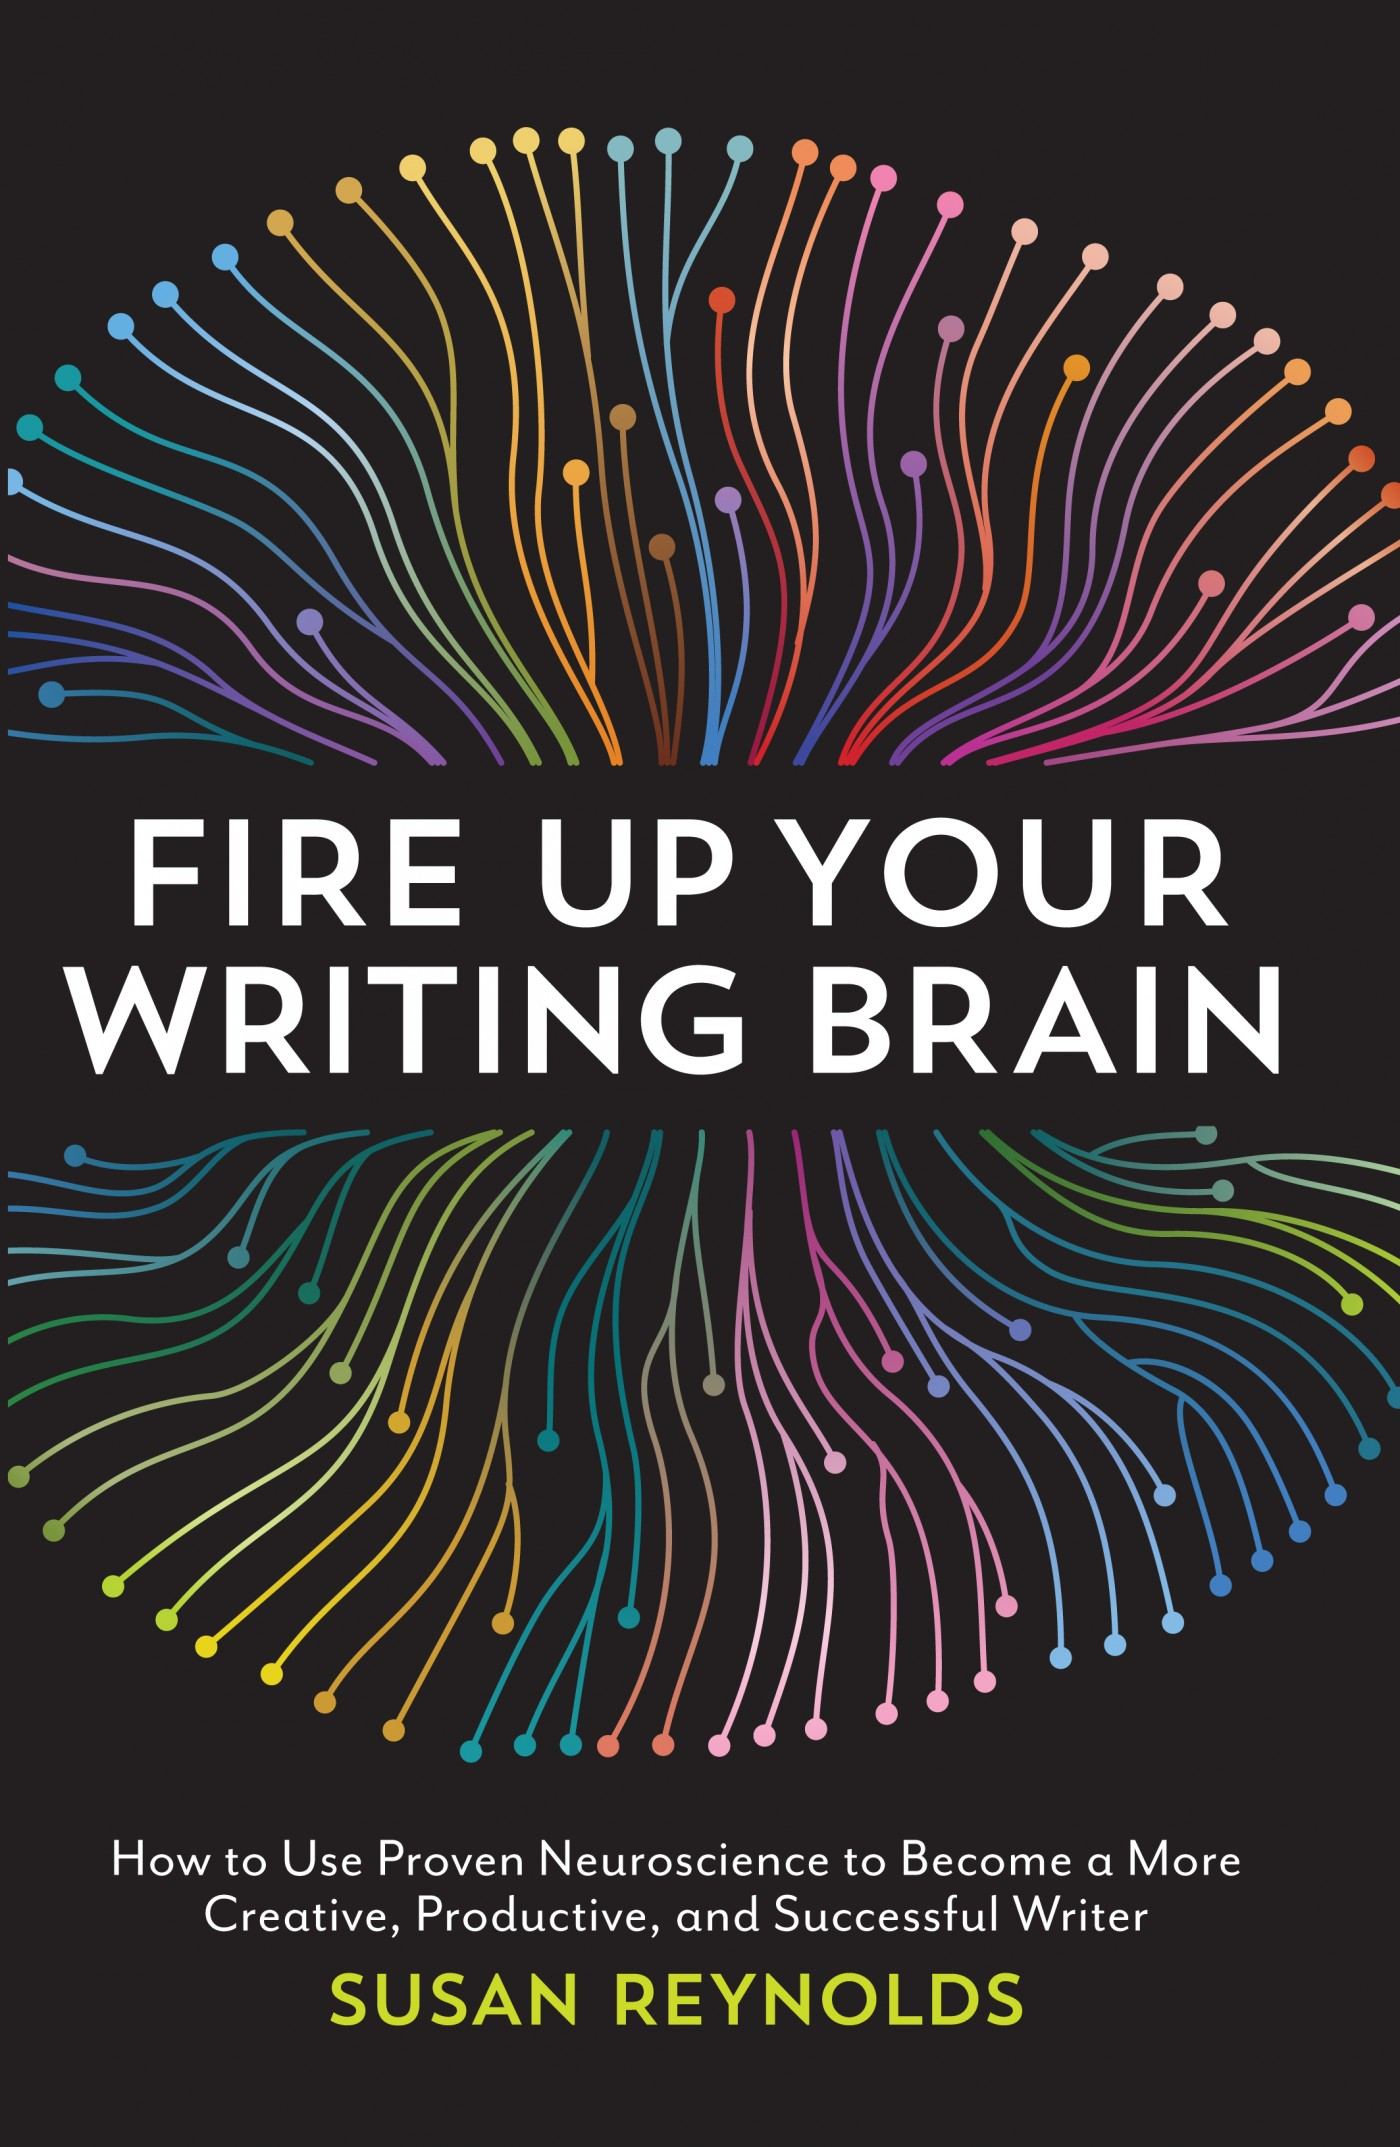 023 Fire Up Your Writing Brain Essay Example Outstanding Brainstorming Techniques Topics College 1400